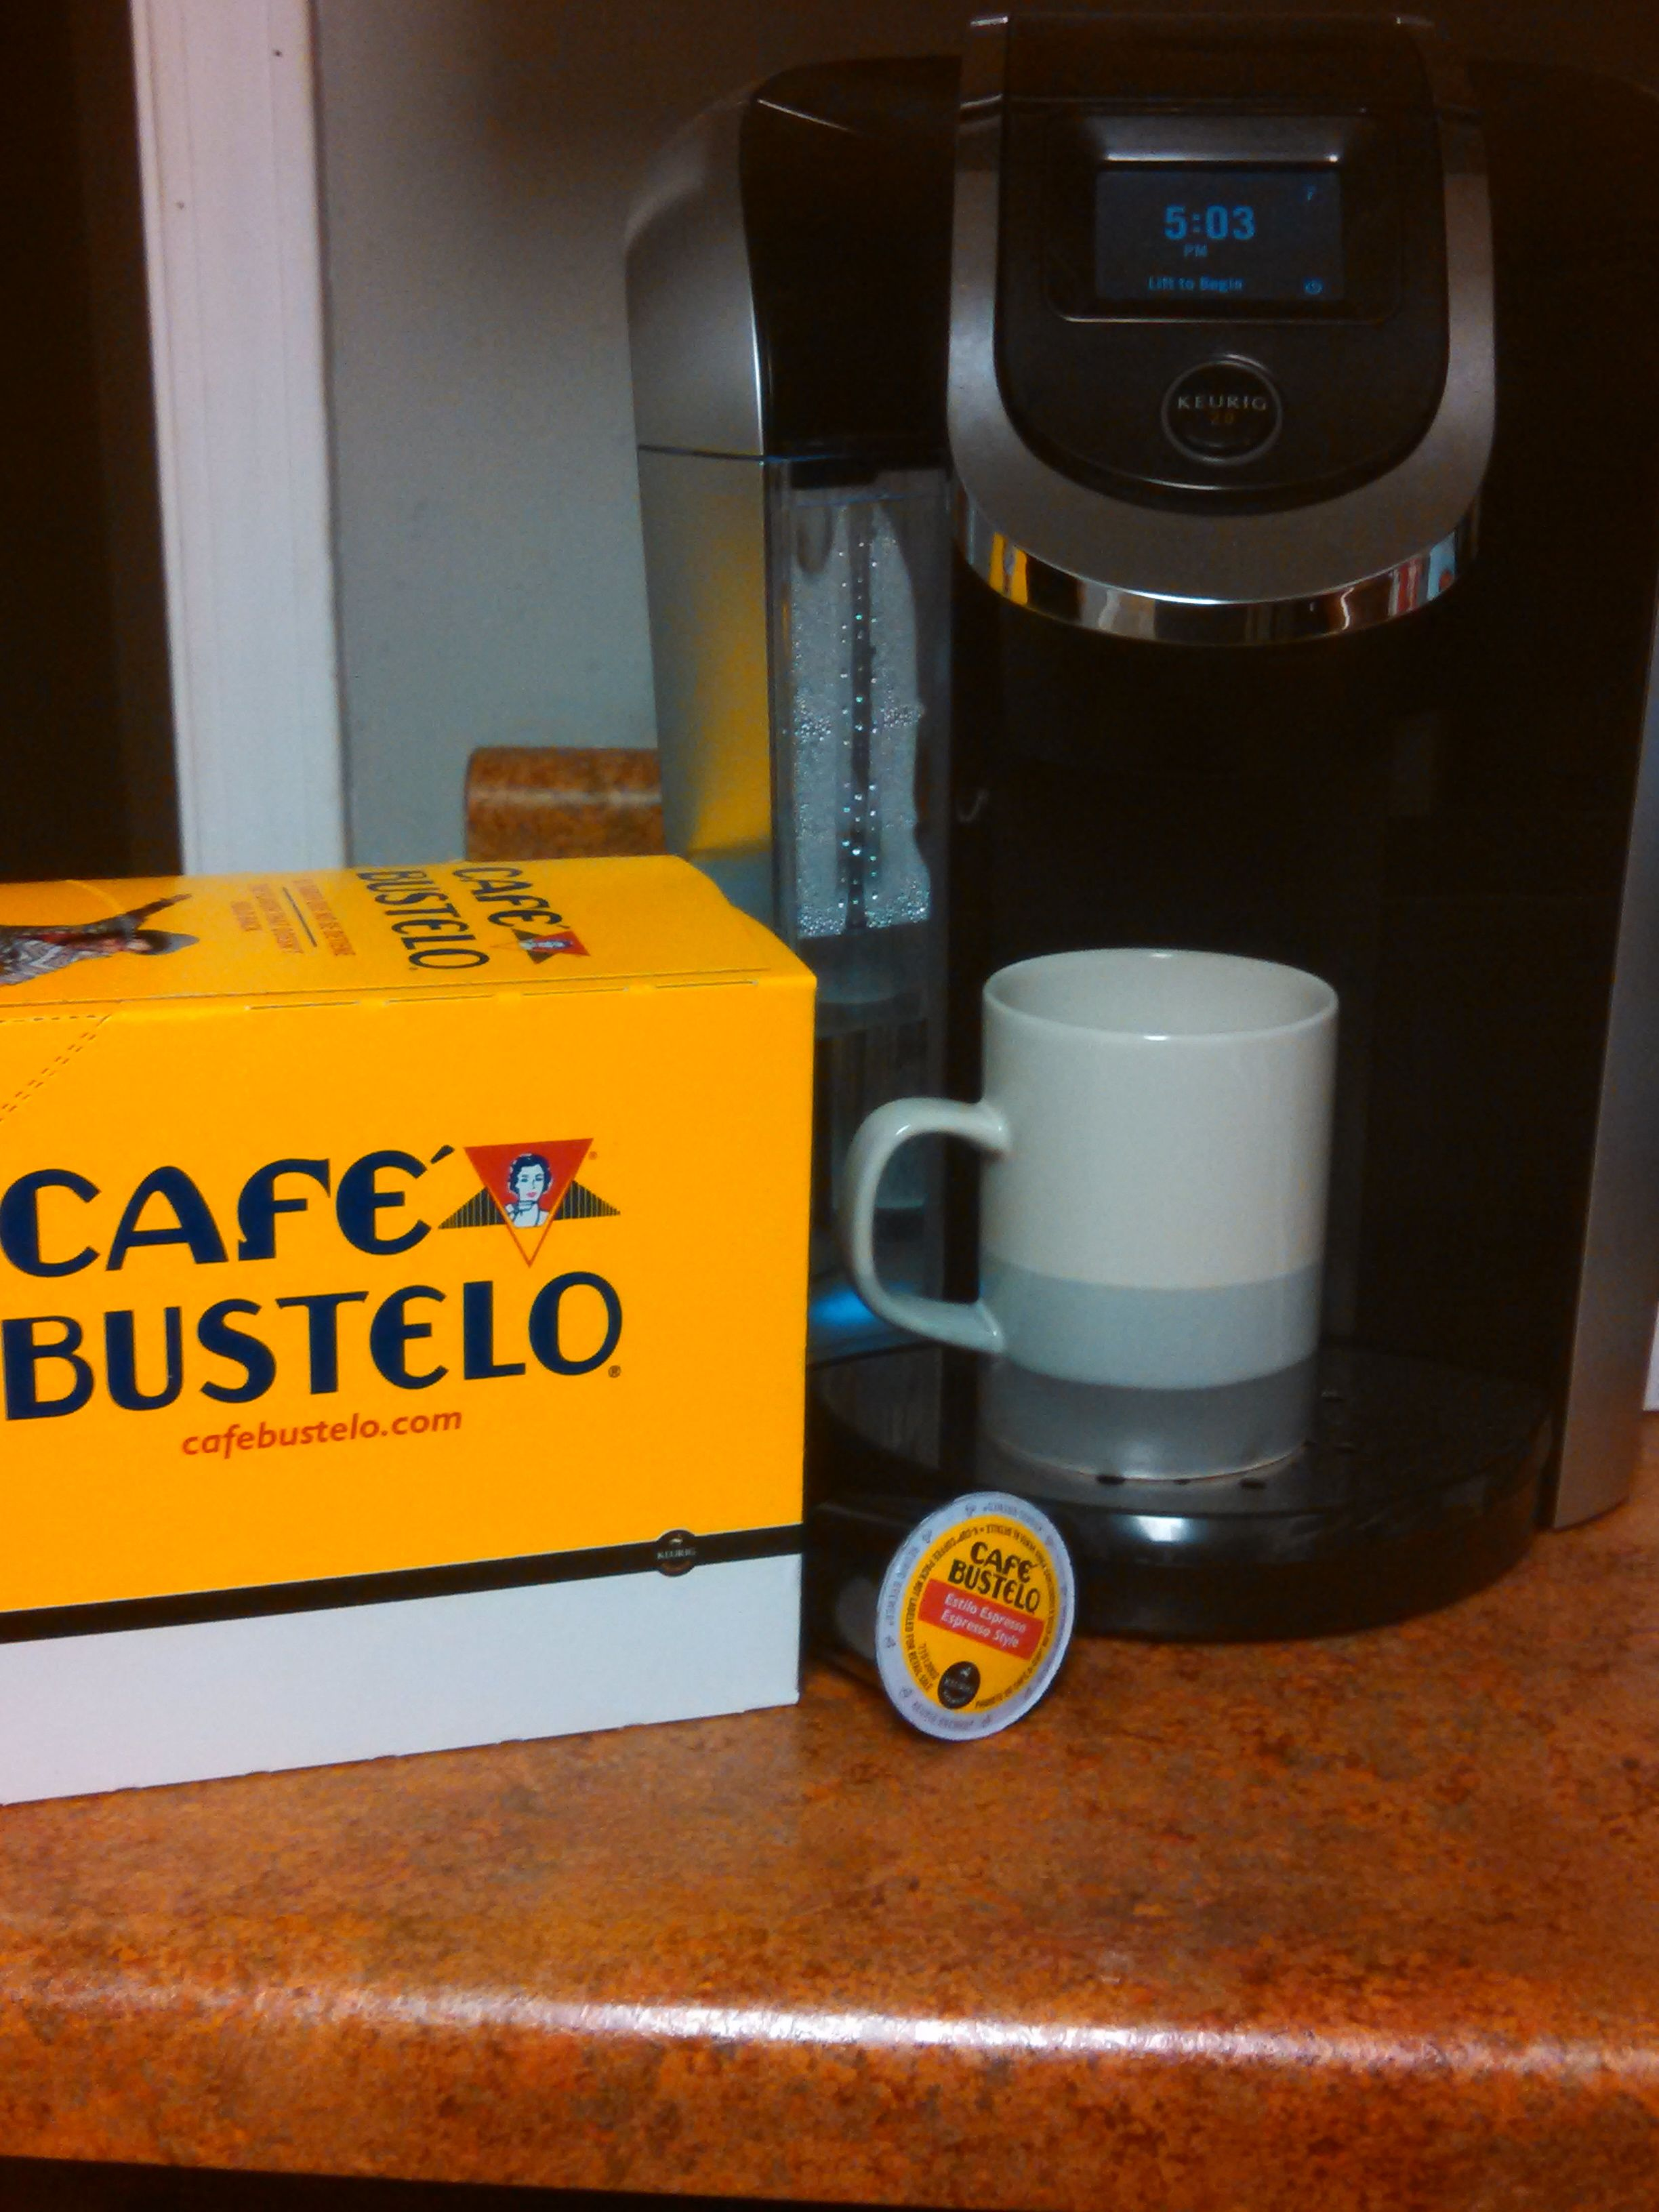 Cafe bustelo coffee kcups im over the moon happy